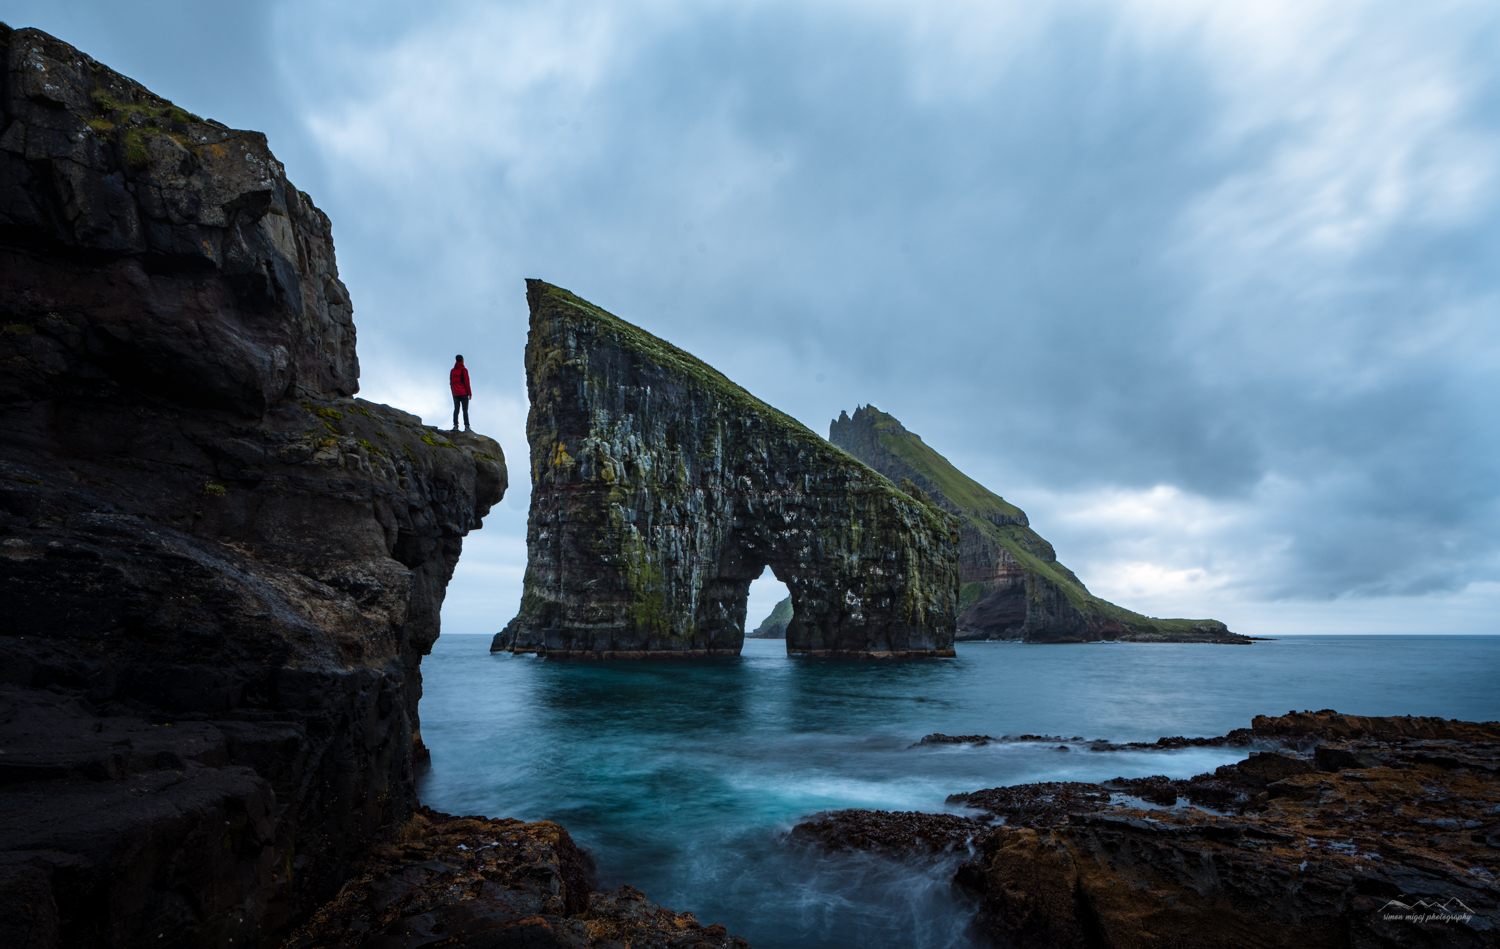 Low down photography of Drangardnir and Tindhólmur in the background. Faroe Islands